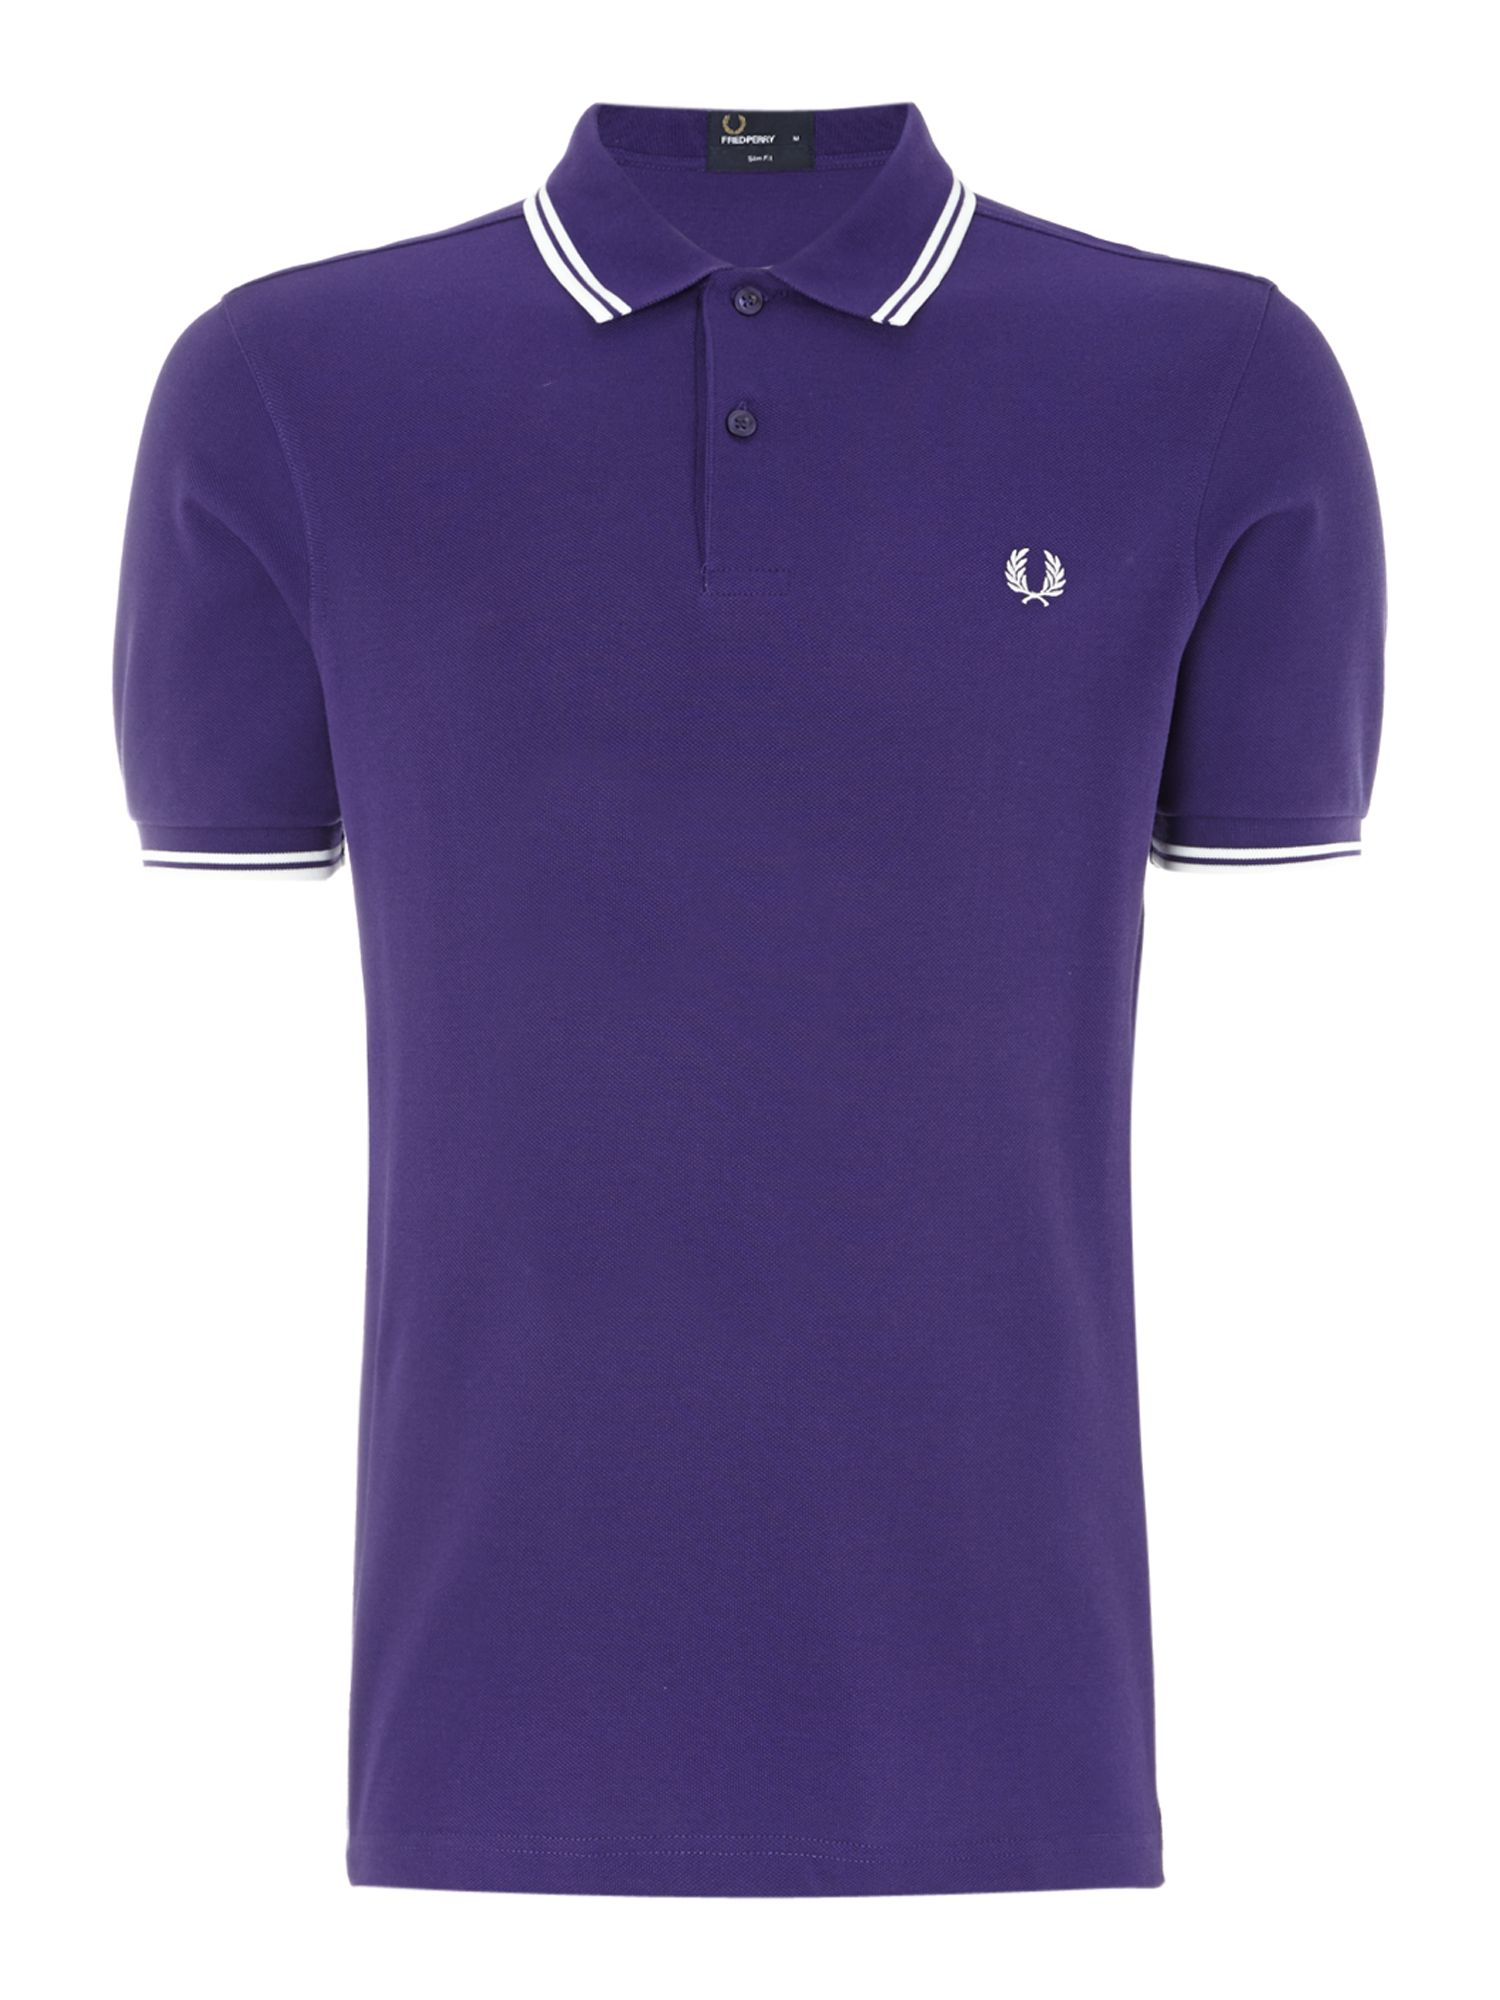 fred perry classic slim fit twin tipped polo shirt in. Black Bedroom Furniture Sets. Home Design Ideas